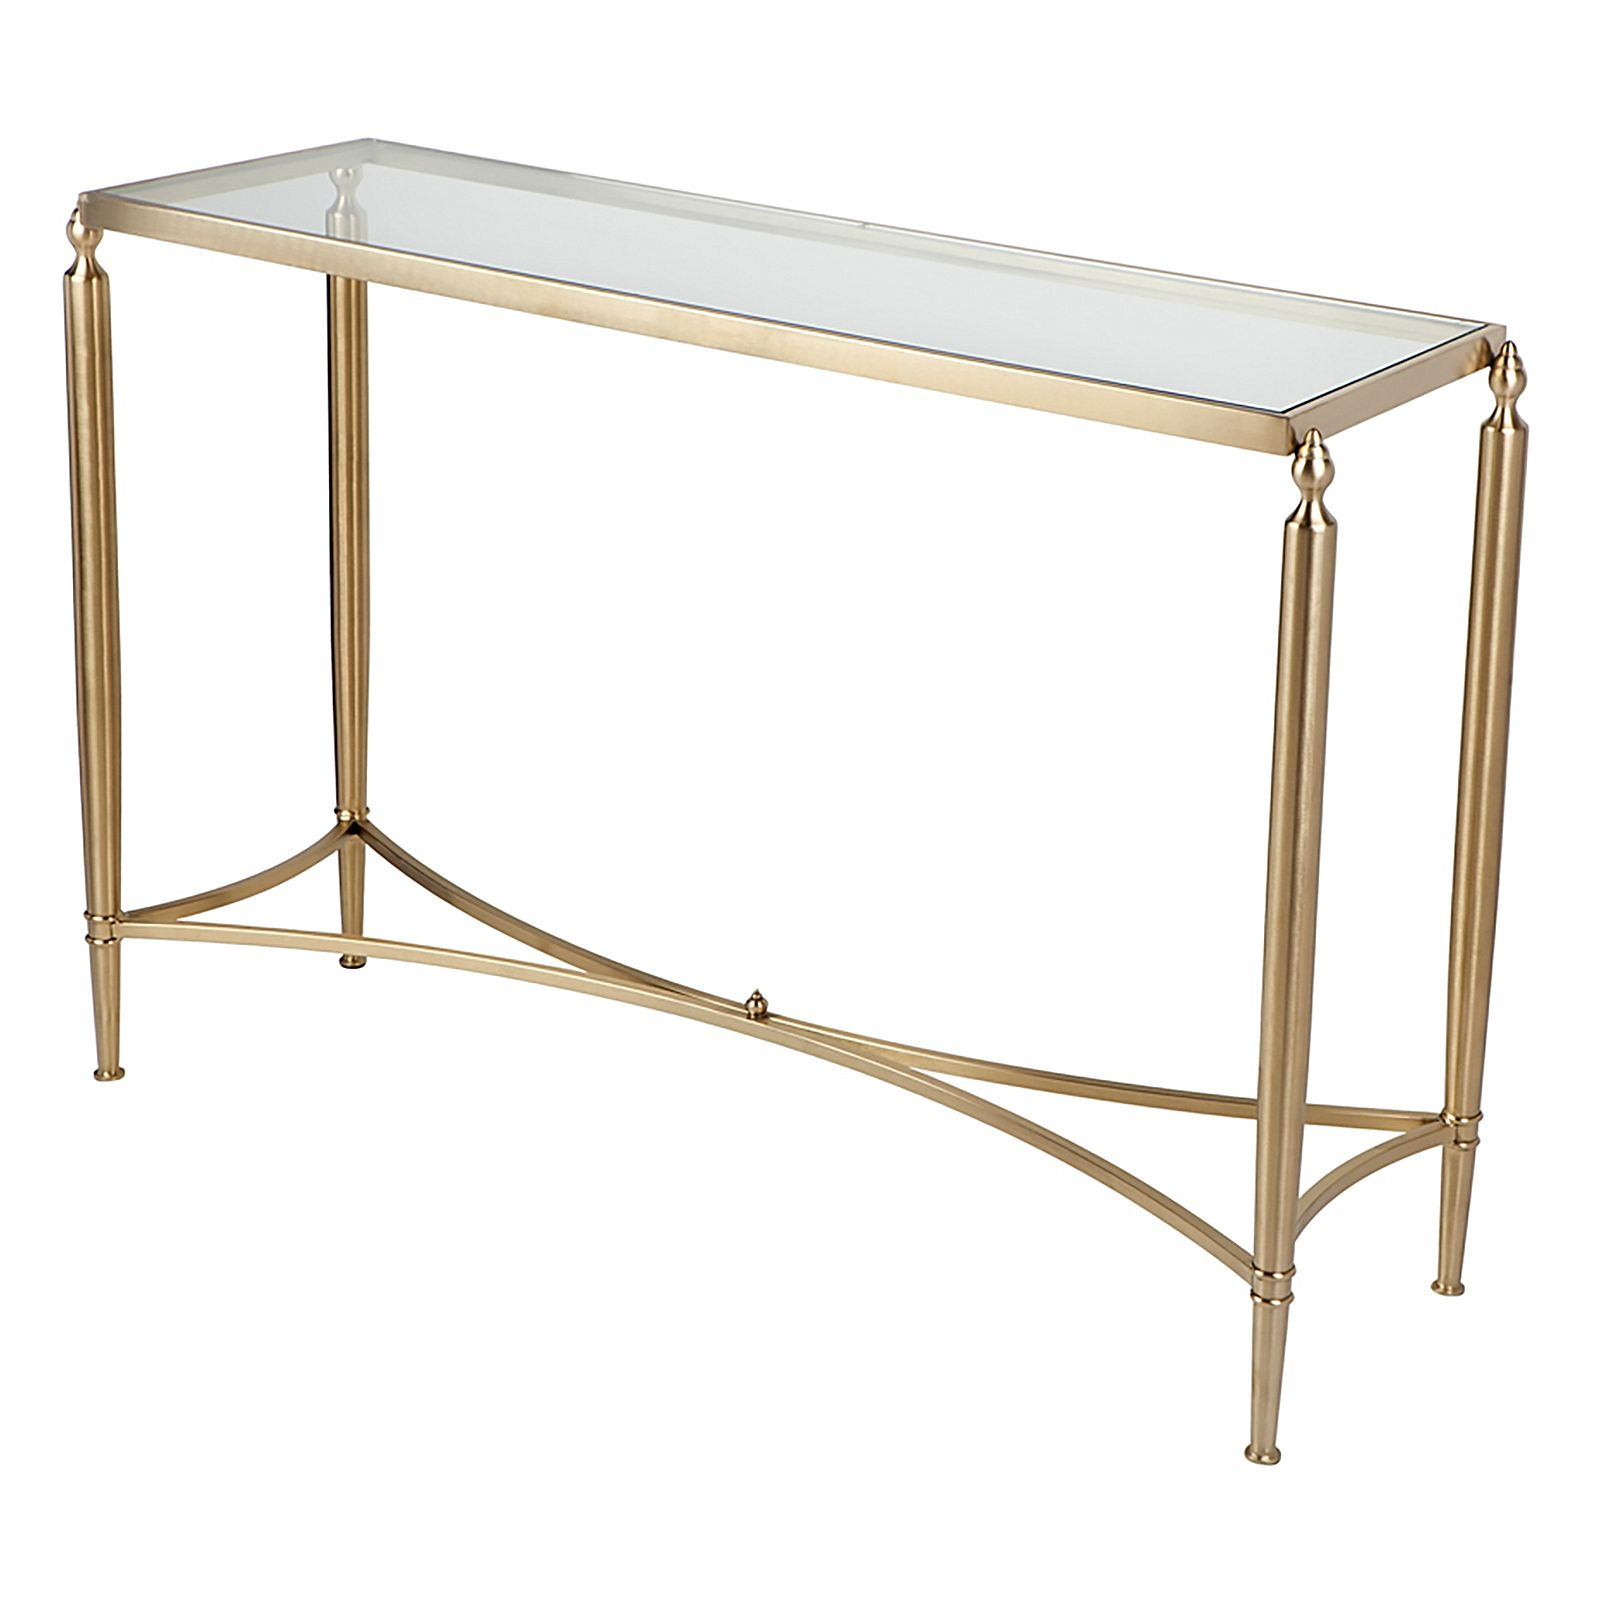 Jacques Console Table, Goldcafe Lighting & Living | Zanui Regarding Jacque Console Tables (Gallery 7 of 20)